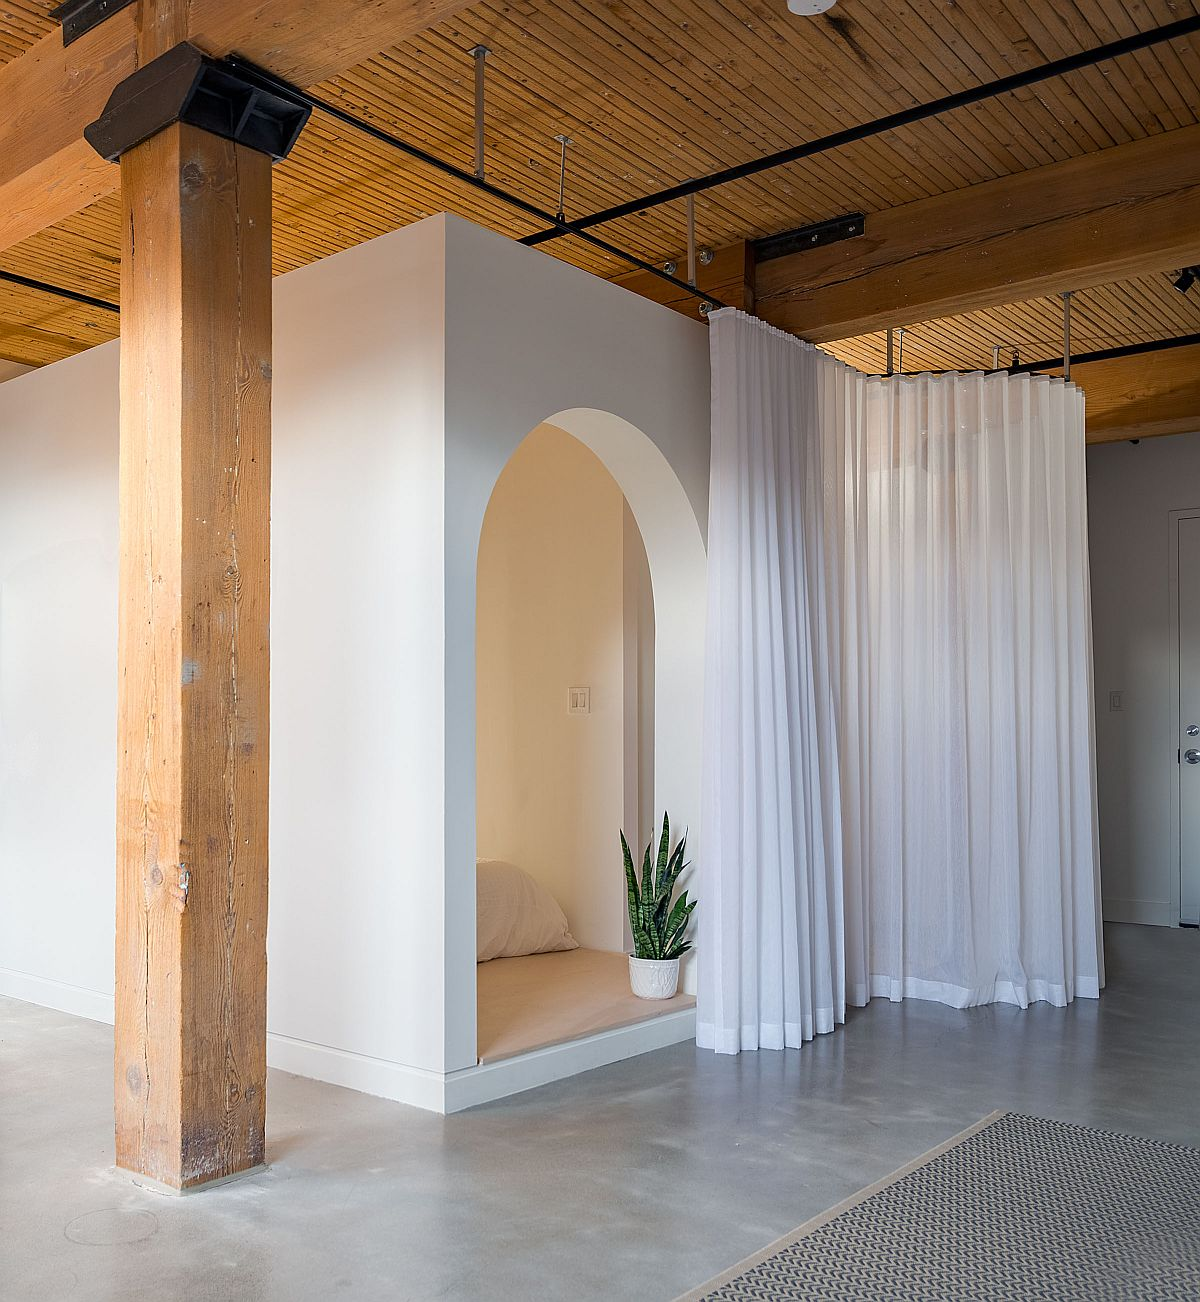 White drapes slide across to give those inside the bedroom ample privacy